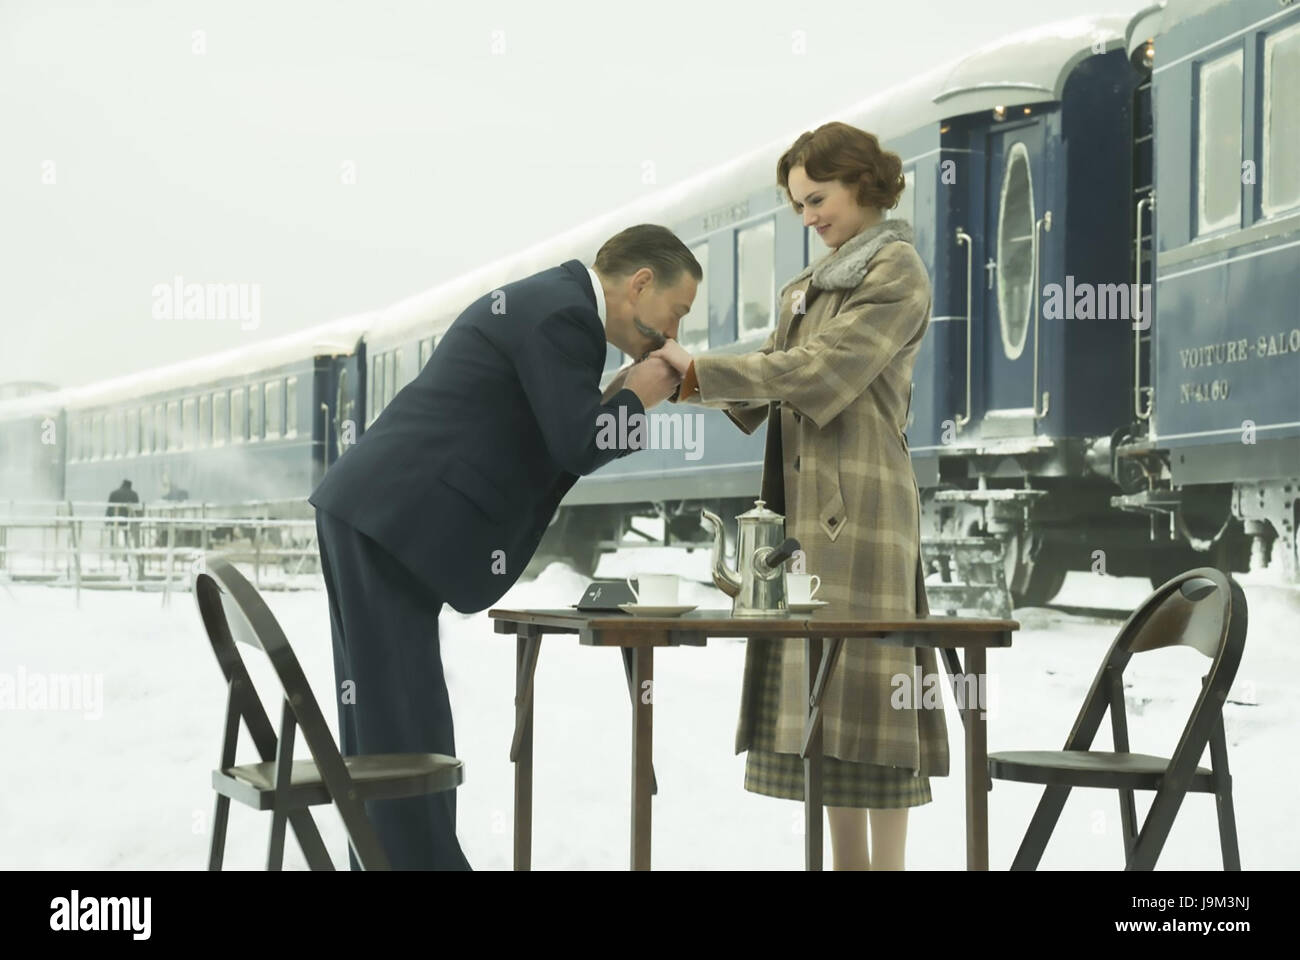 MURDER ON THE ORINET EXPRESS 2017 20th Century Fox film with Kenneth Branagh as Poirot and Daisy Ridley as Mary - Stock Image